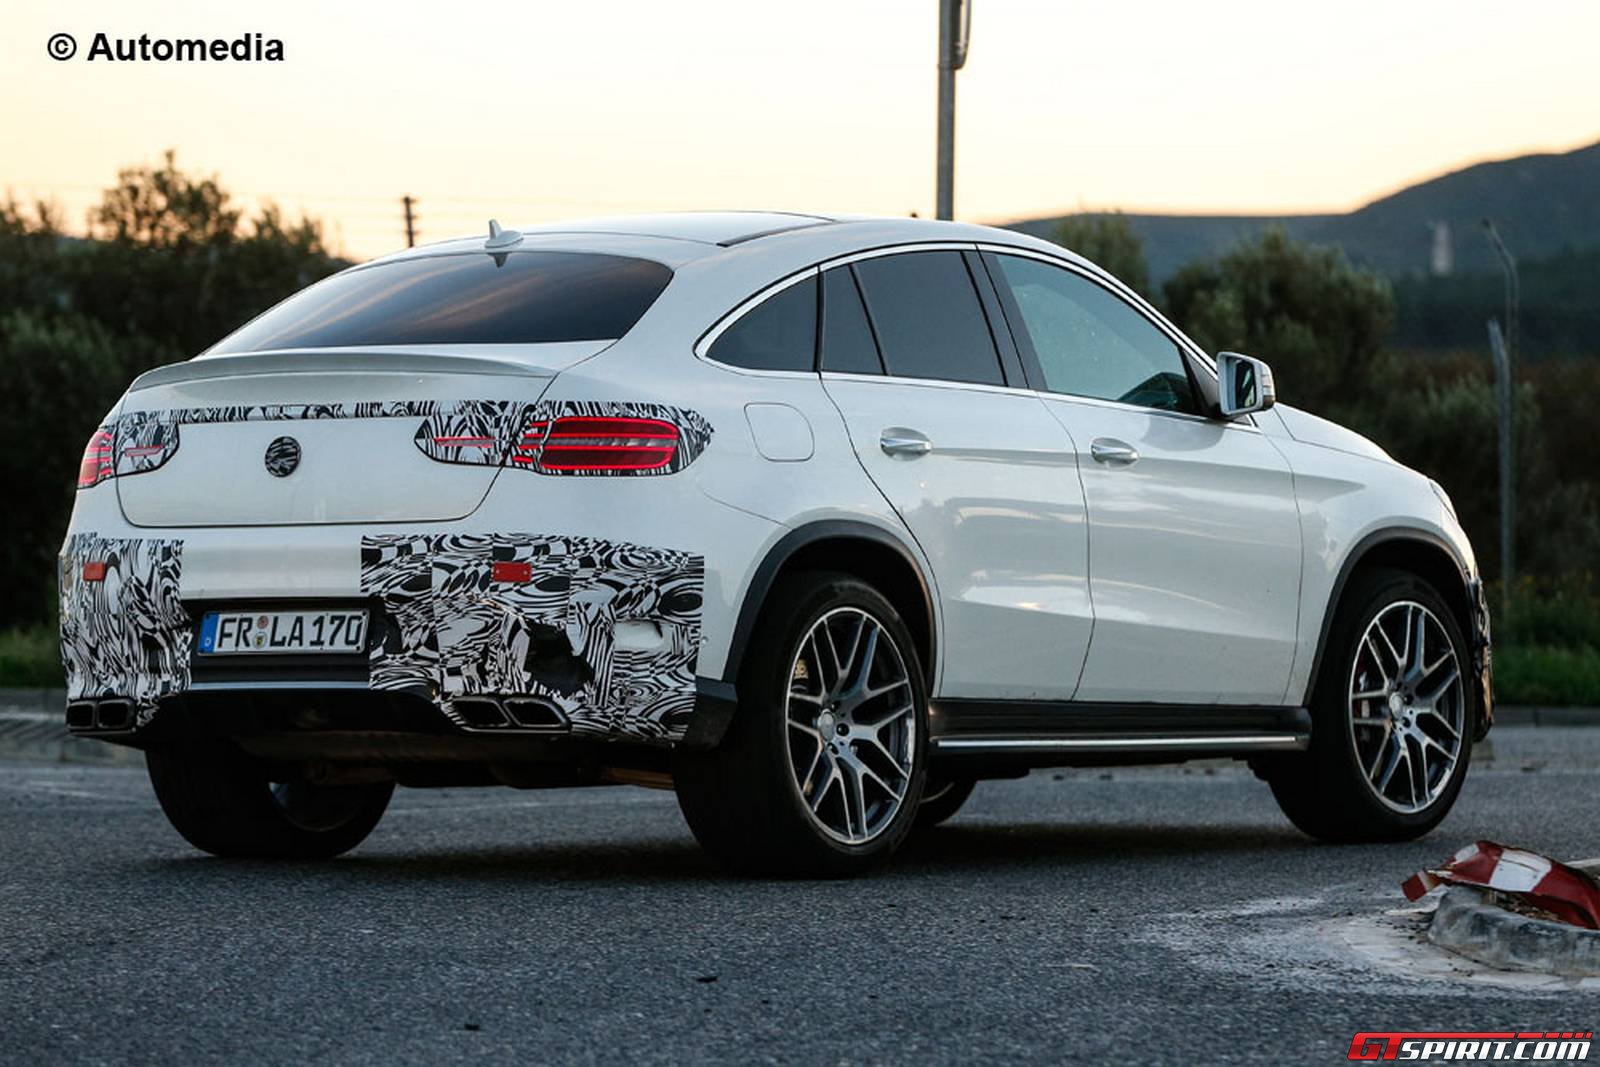 2018 mercedes benz gle coupe car photos catalog 2018 for 2018 mercedes benz gle